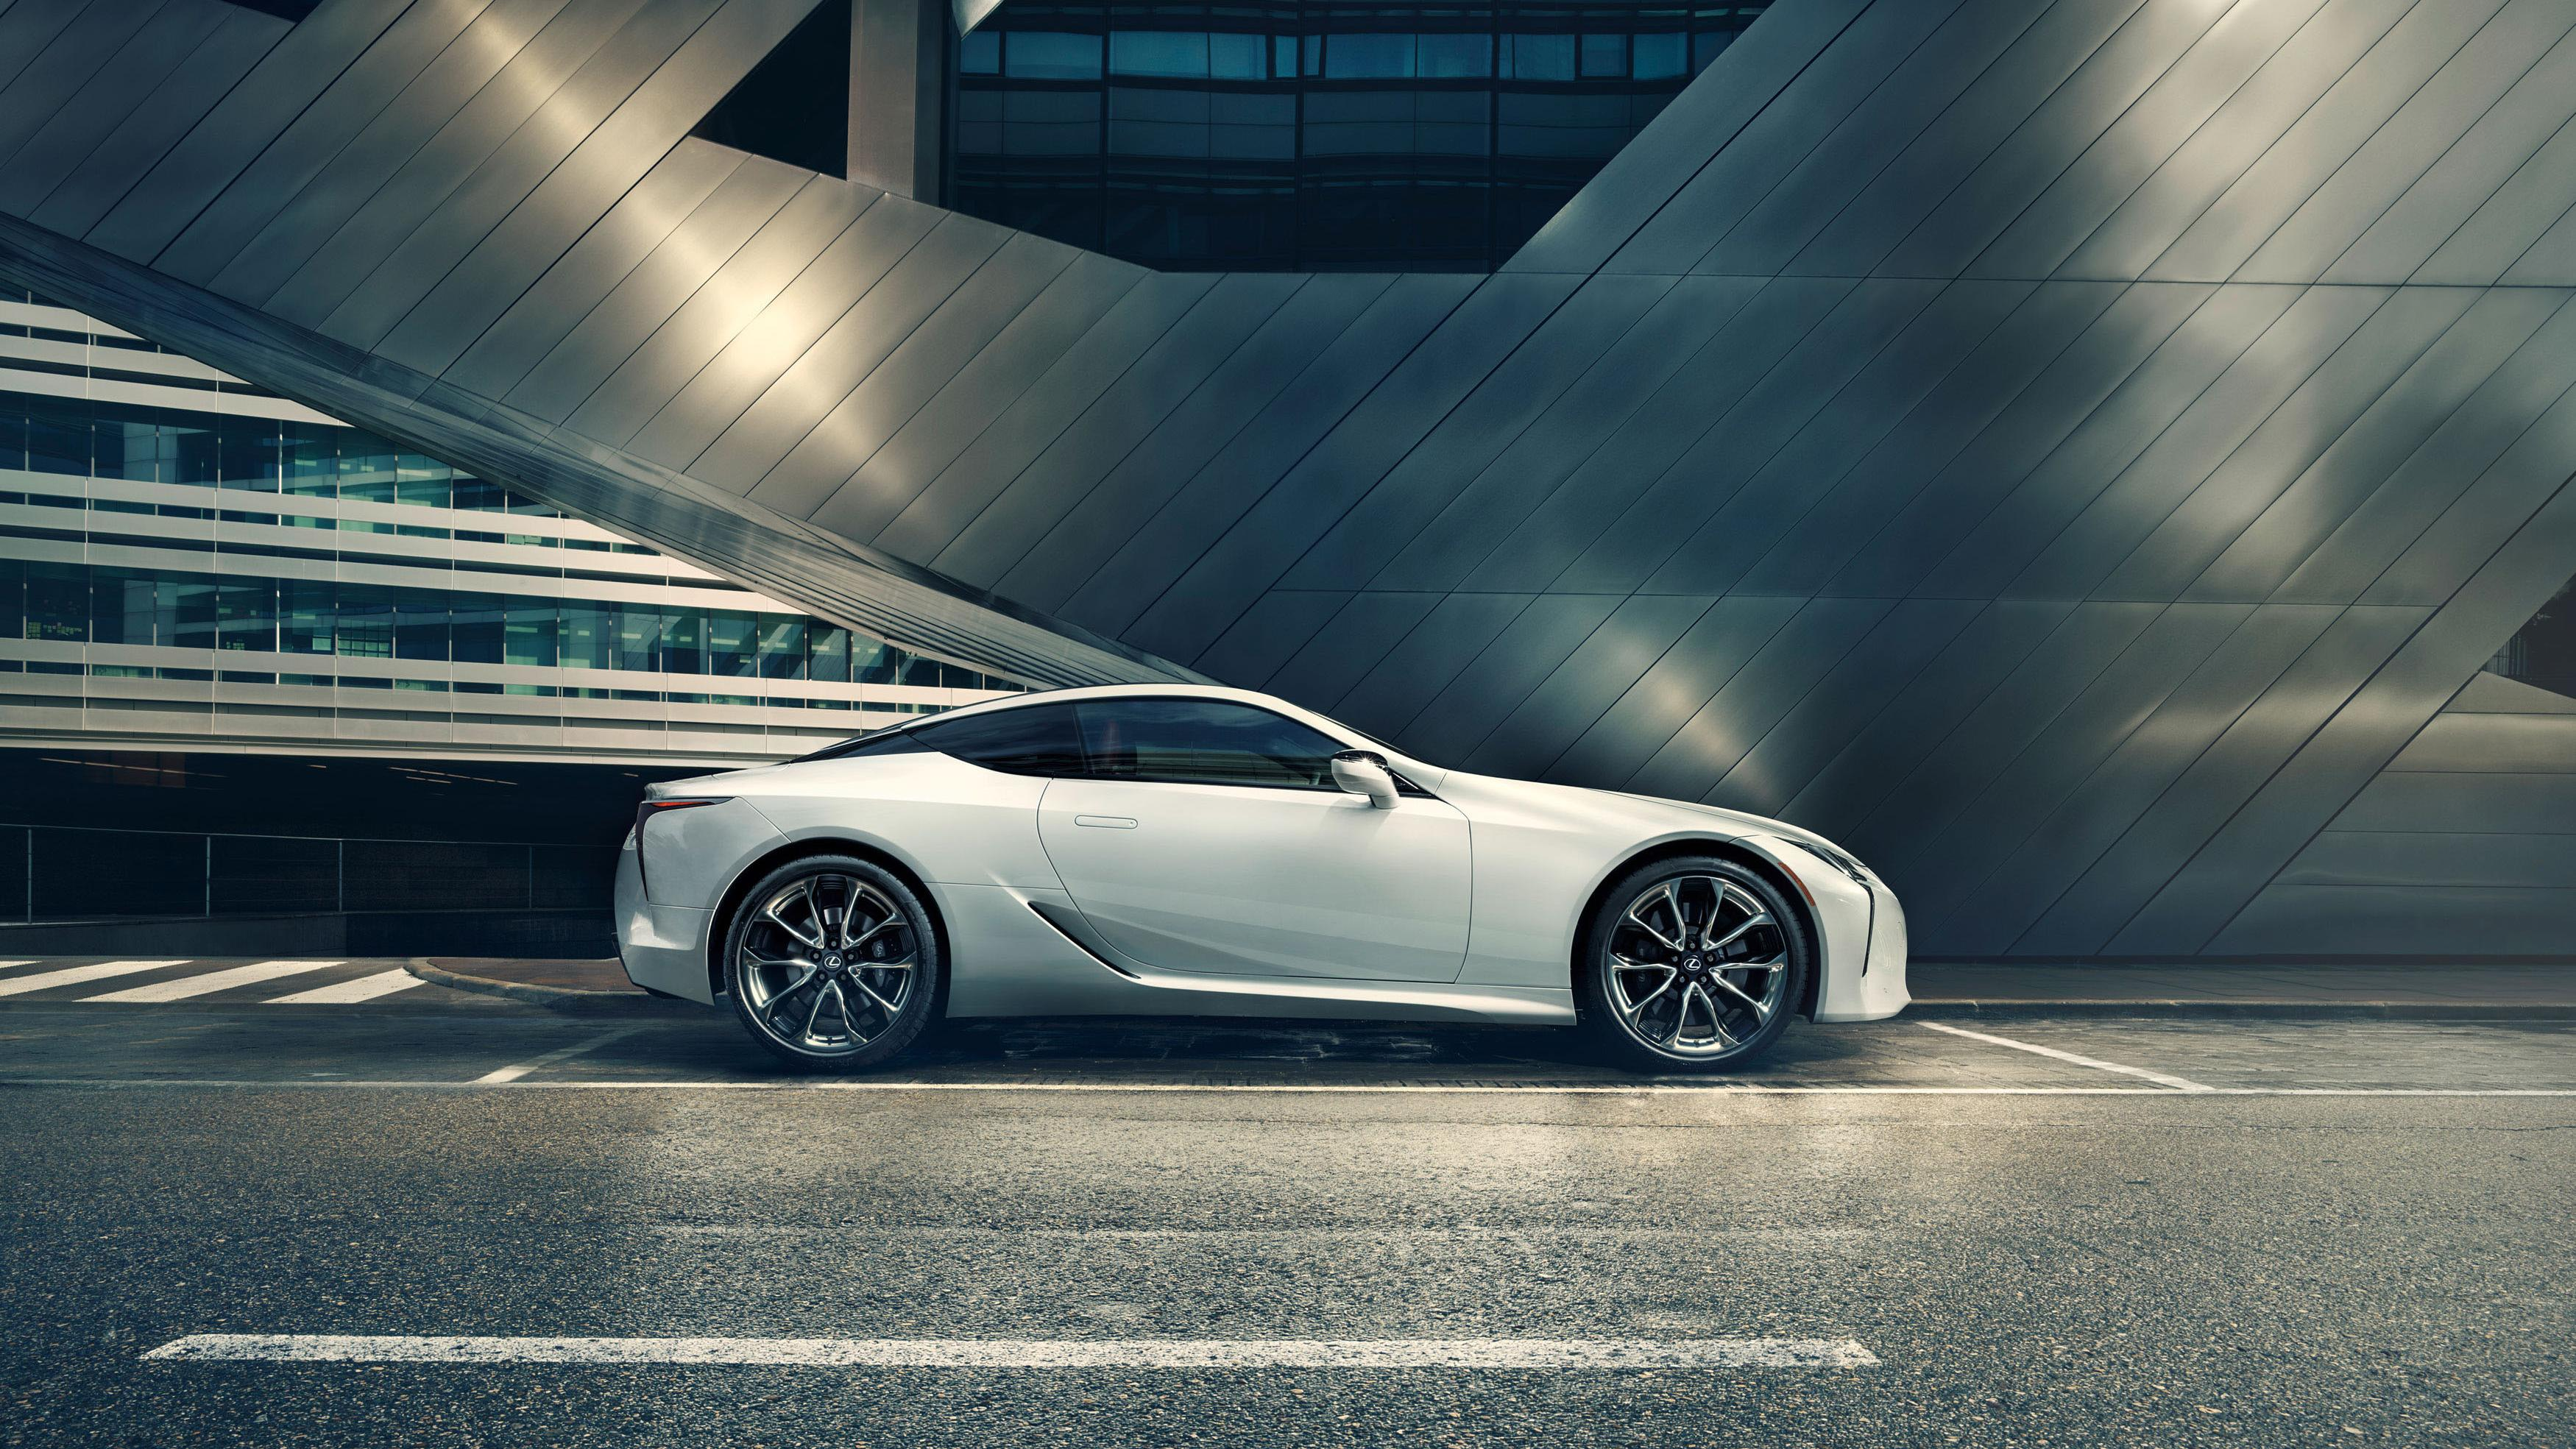 2018 Lexus LC 500 9 Wallpaper | HD Car Wallpapers | ID #8051